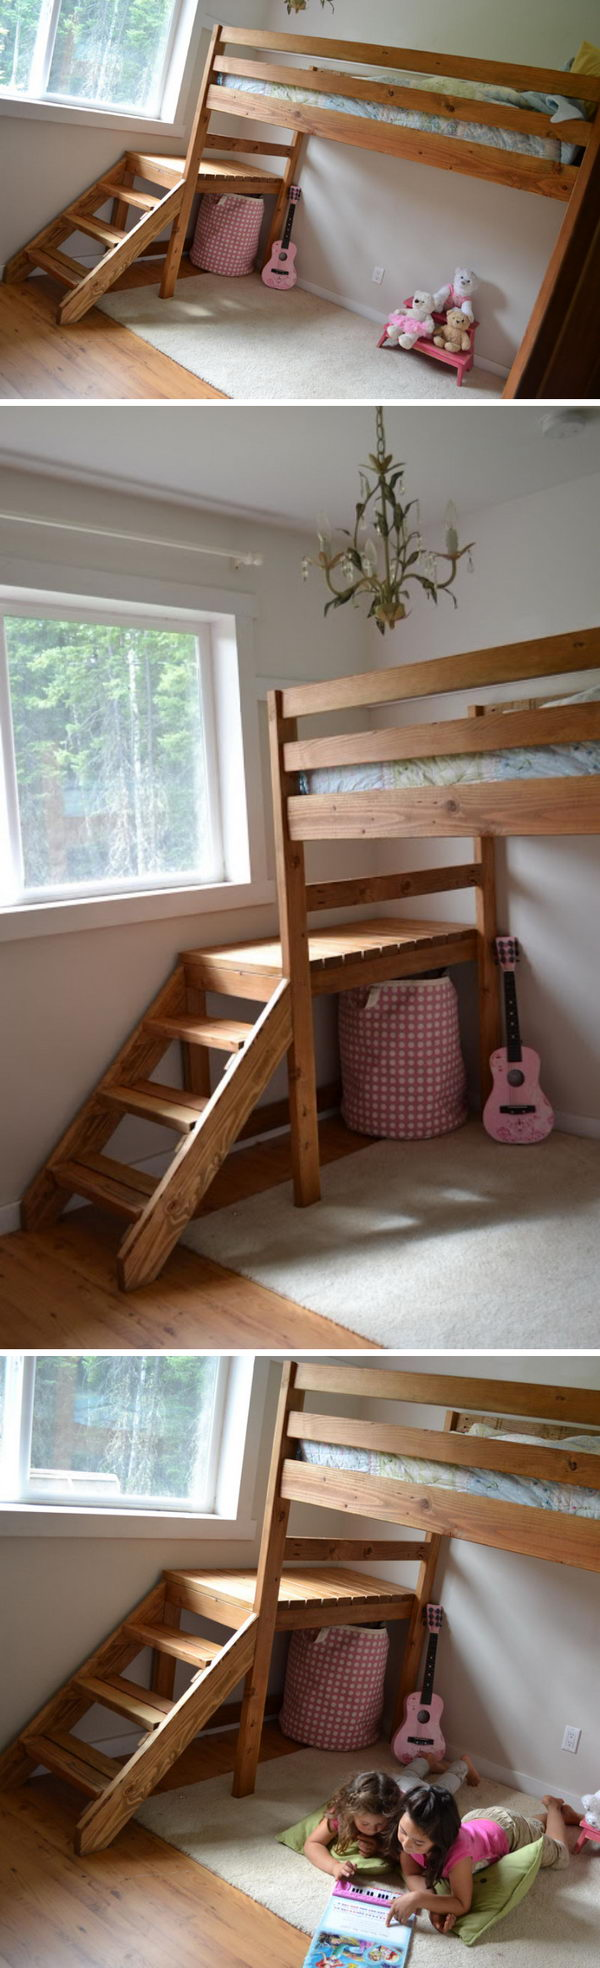 Diy Camp Loft Bed With Stair.